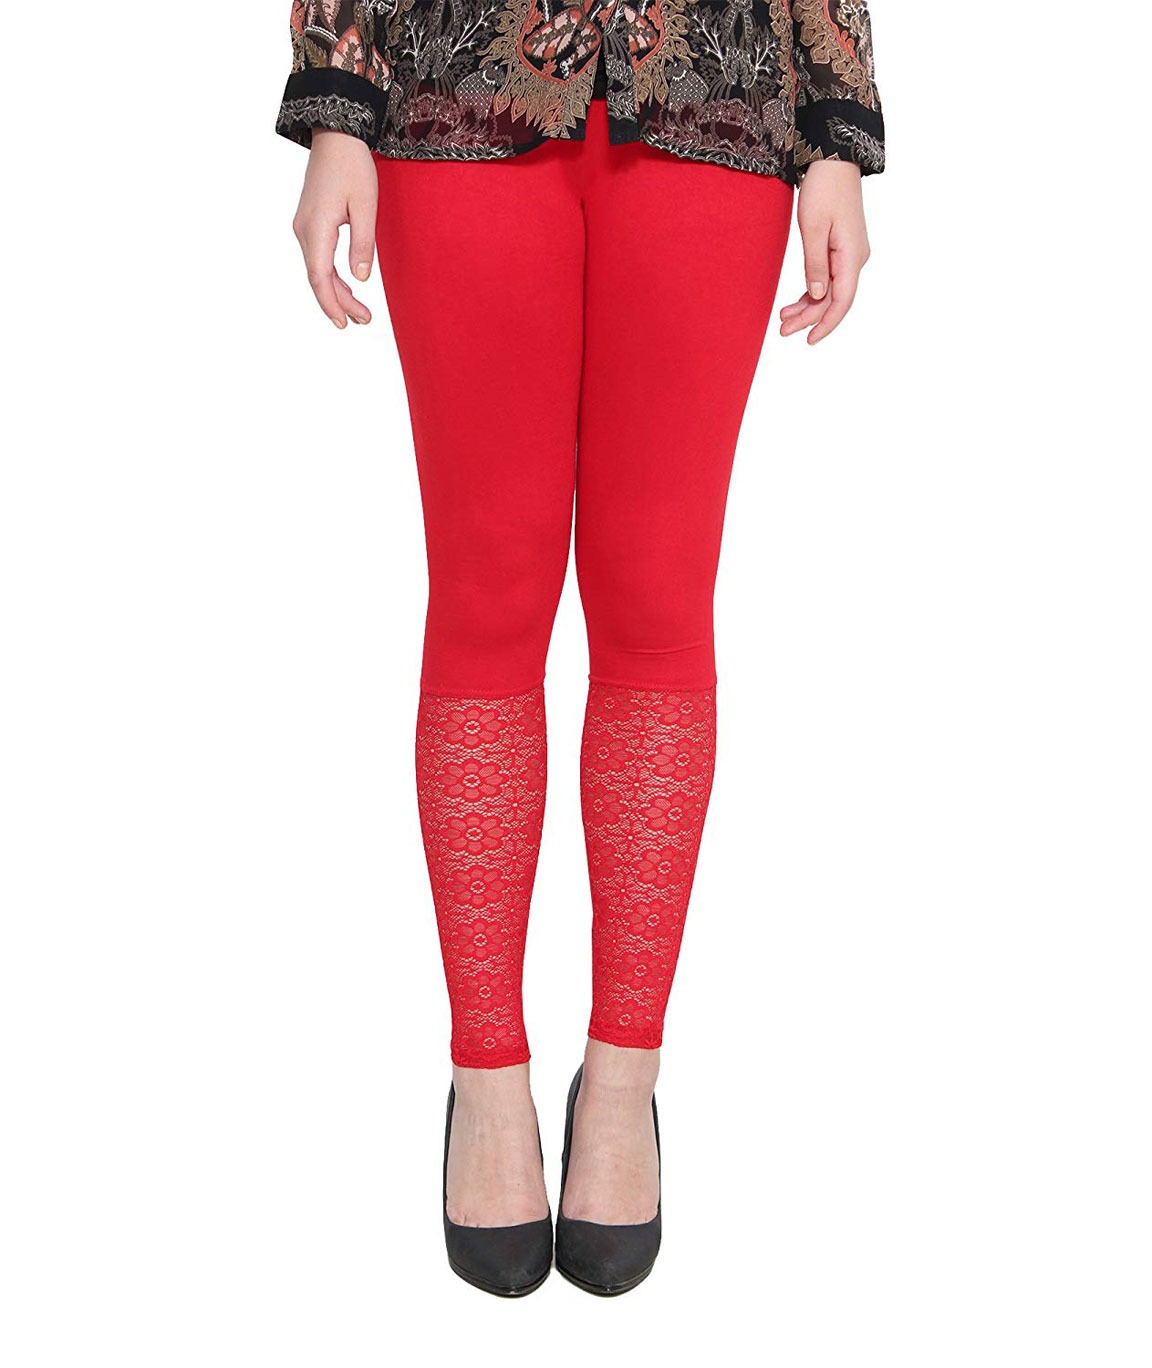 Swag  Leggings Free Size(red)